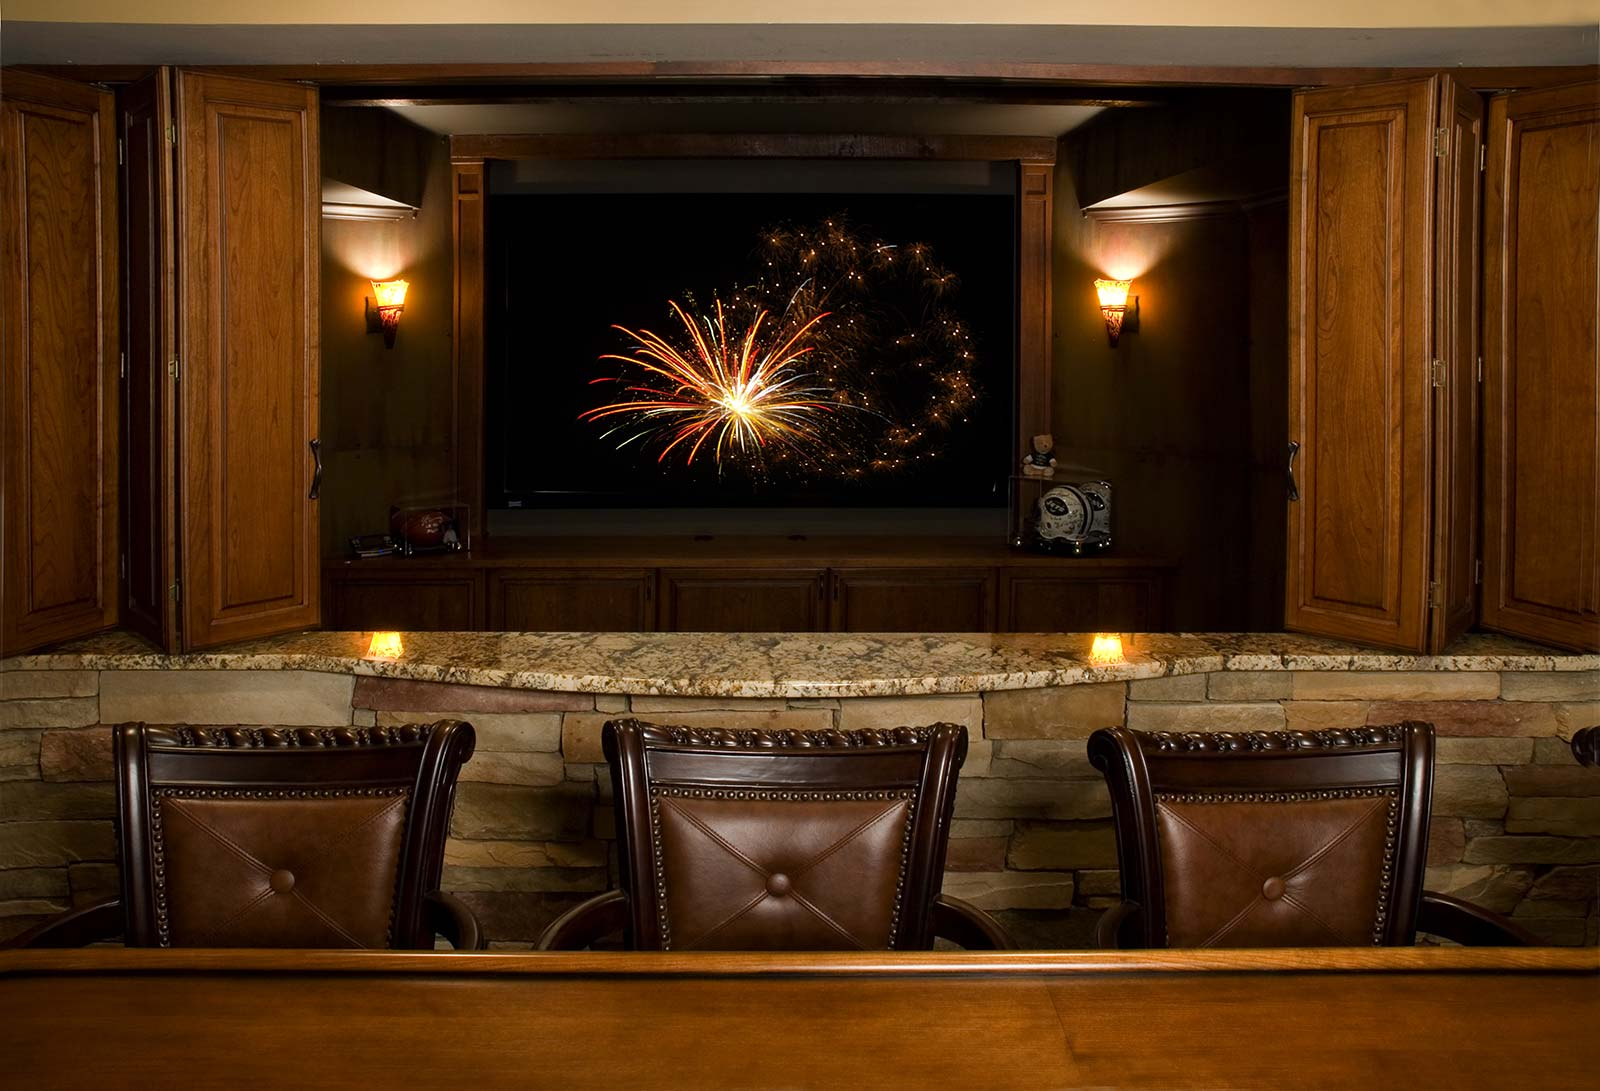 Basement home theater viewed from bar area